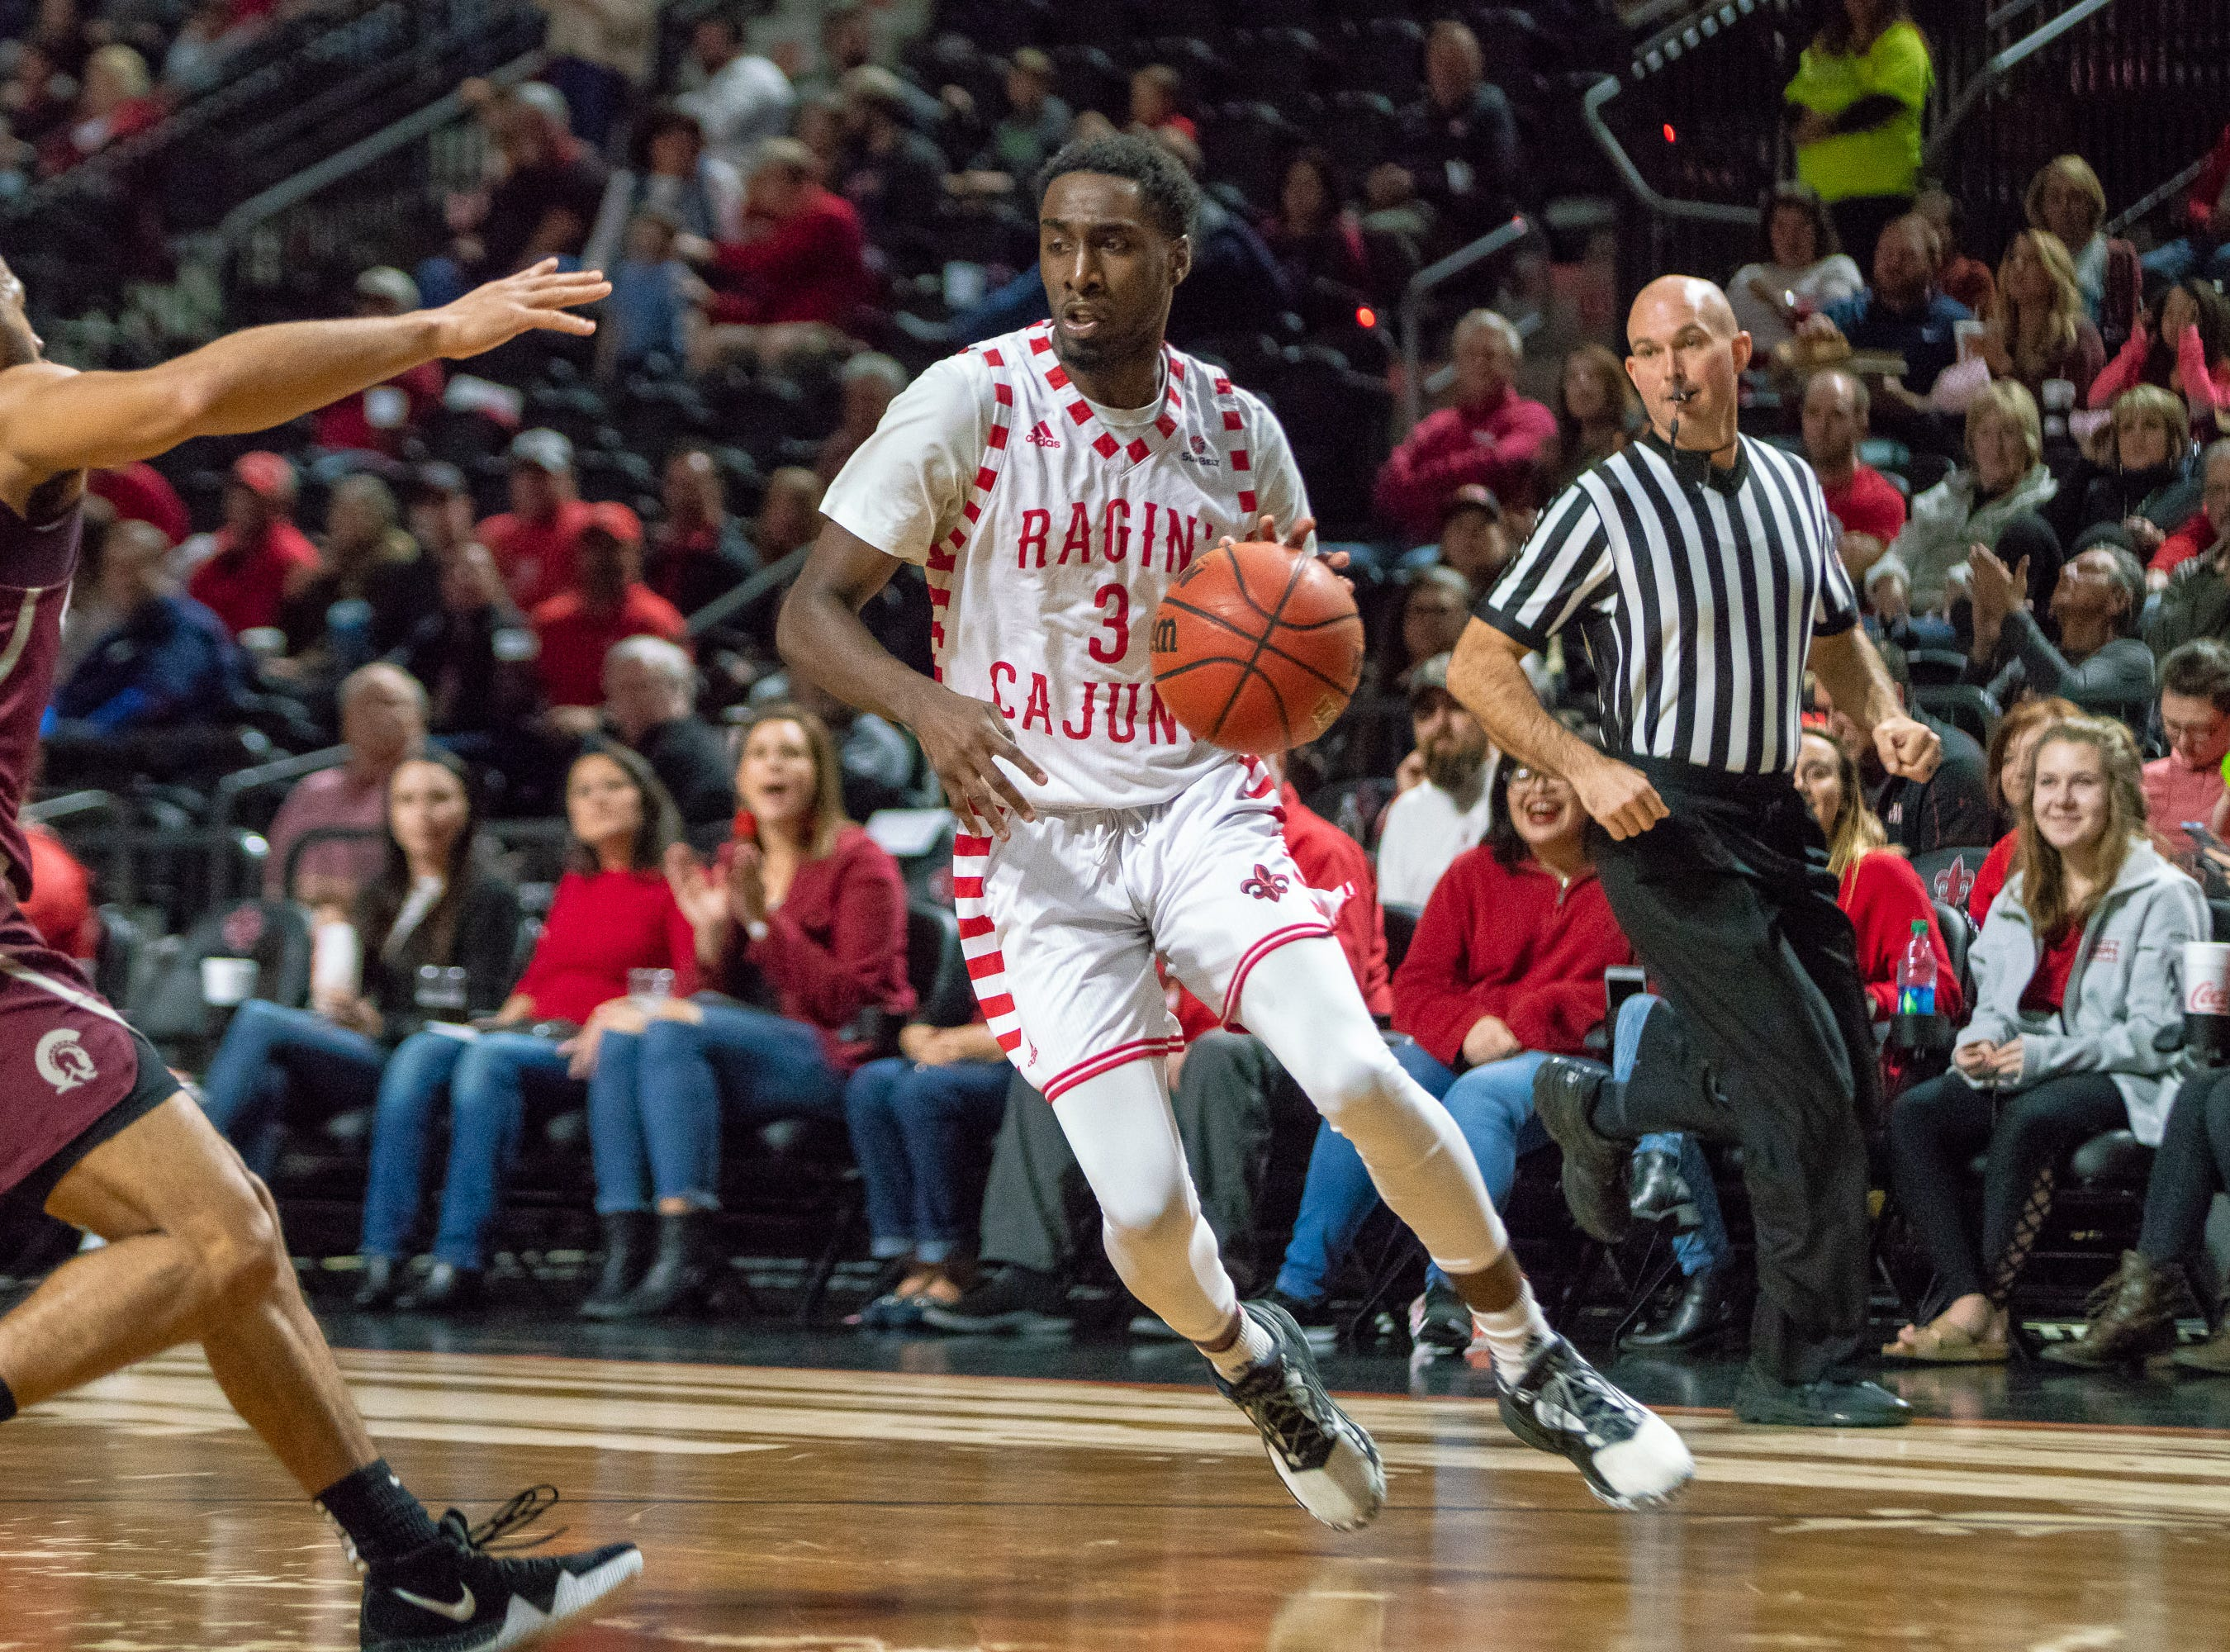 UL's Jeremy Hayes drives to the goal as the Ragin' Cajuns take on the Little Rock Trojans at the Cajundome on January 5, 2019.